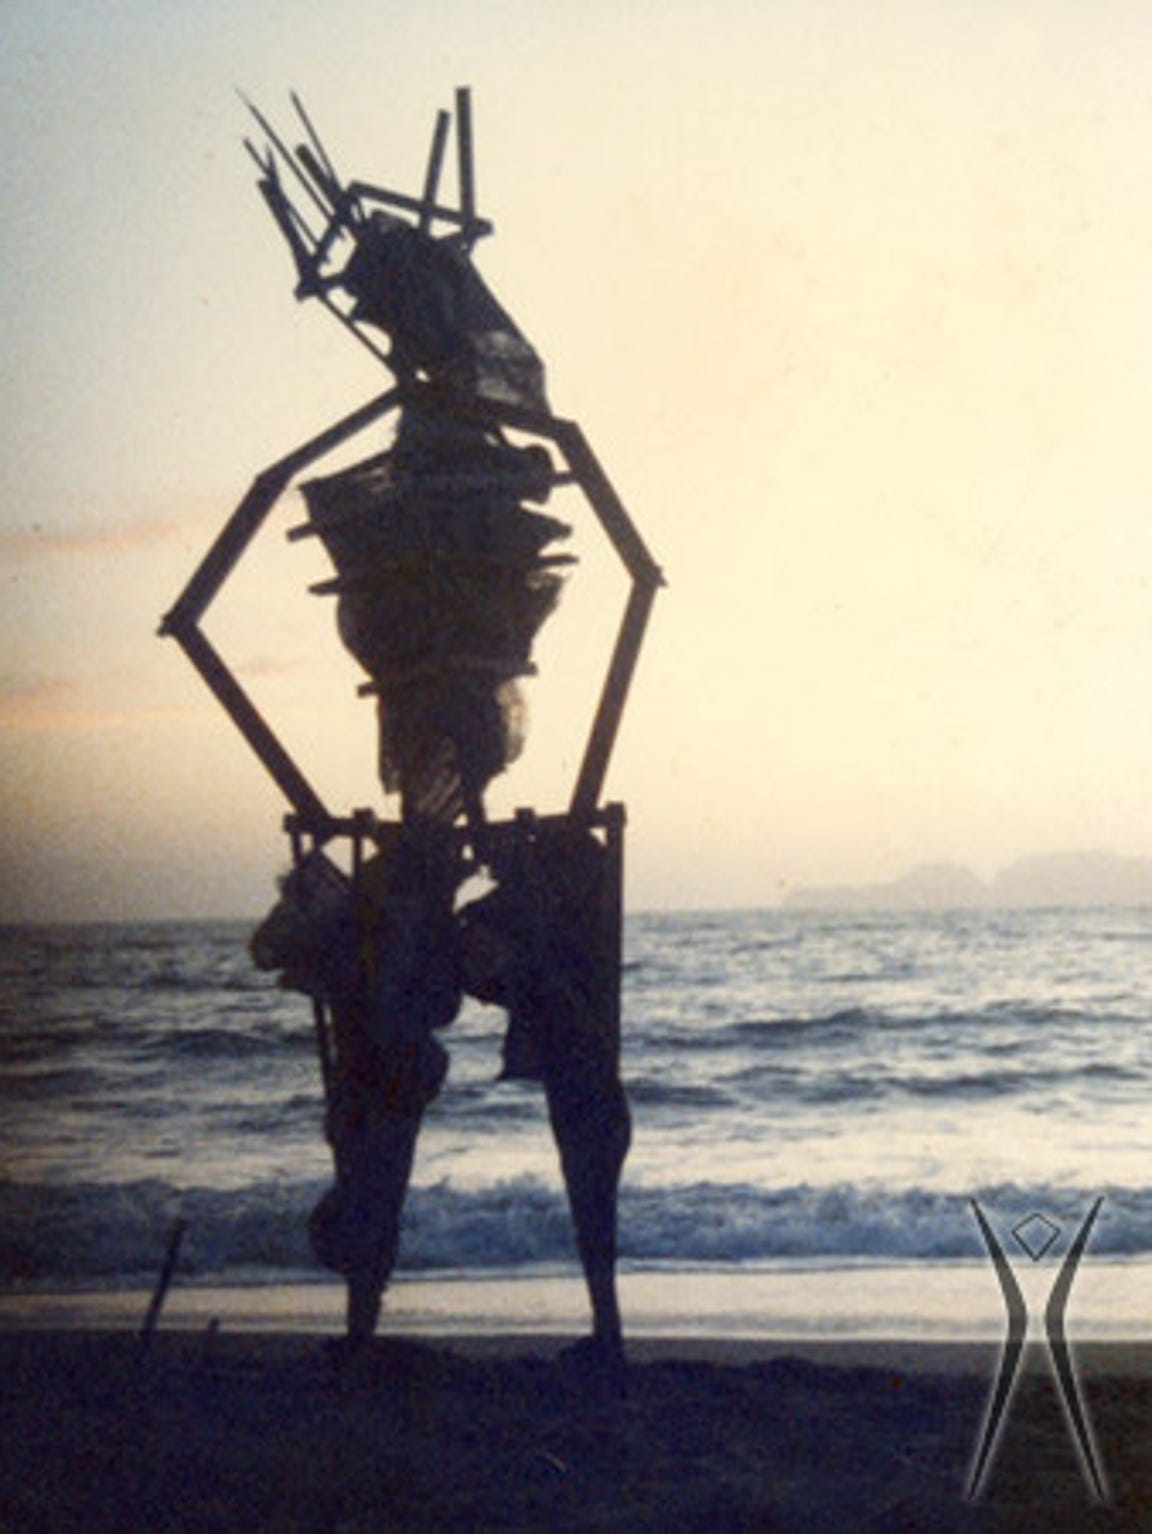 An image of the first man built in 1986 by Jerry James